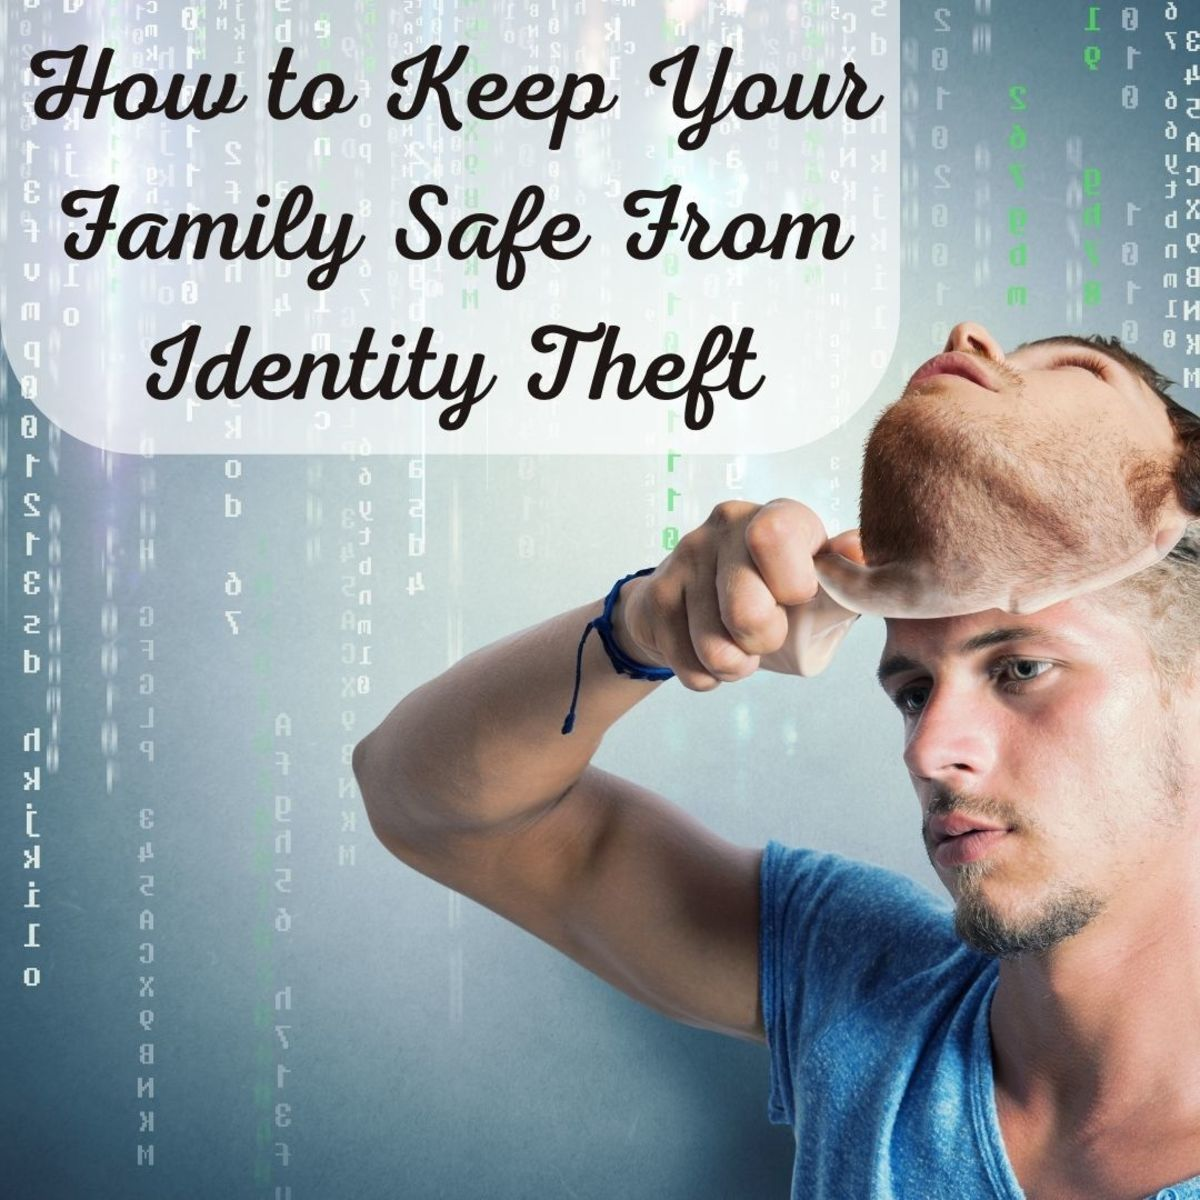 Six ways to keep your family members' identities protected